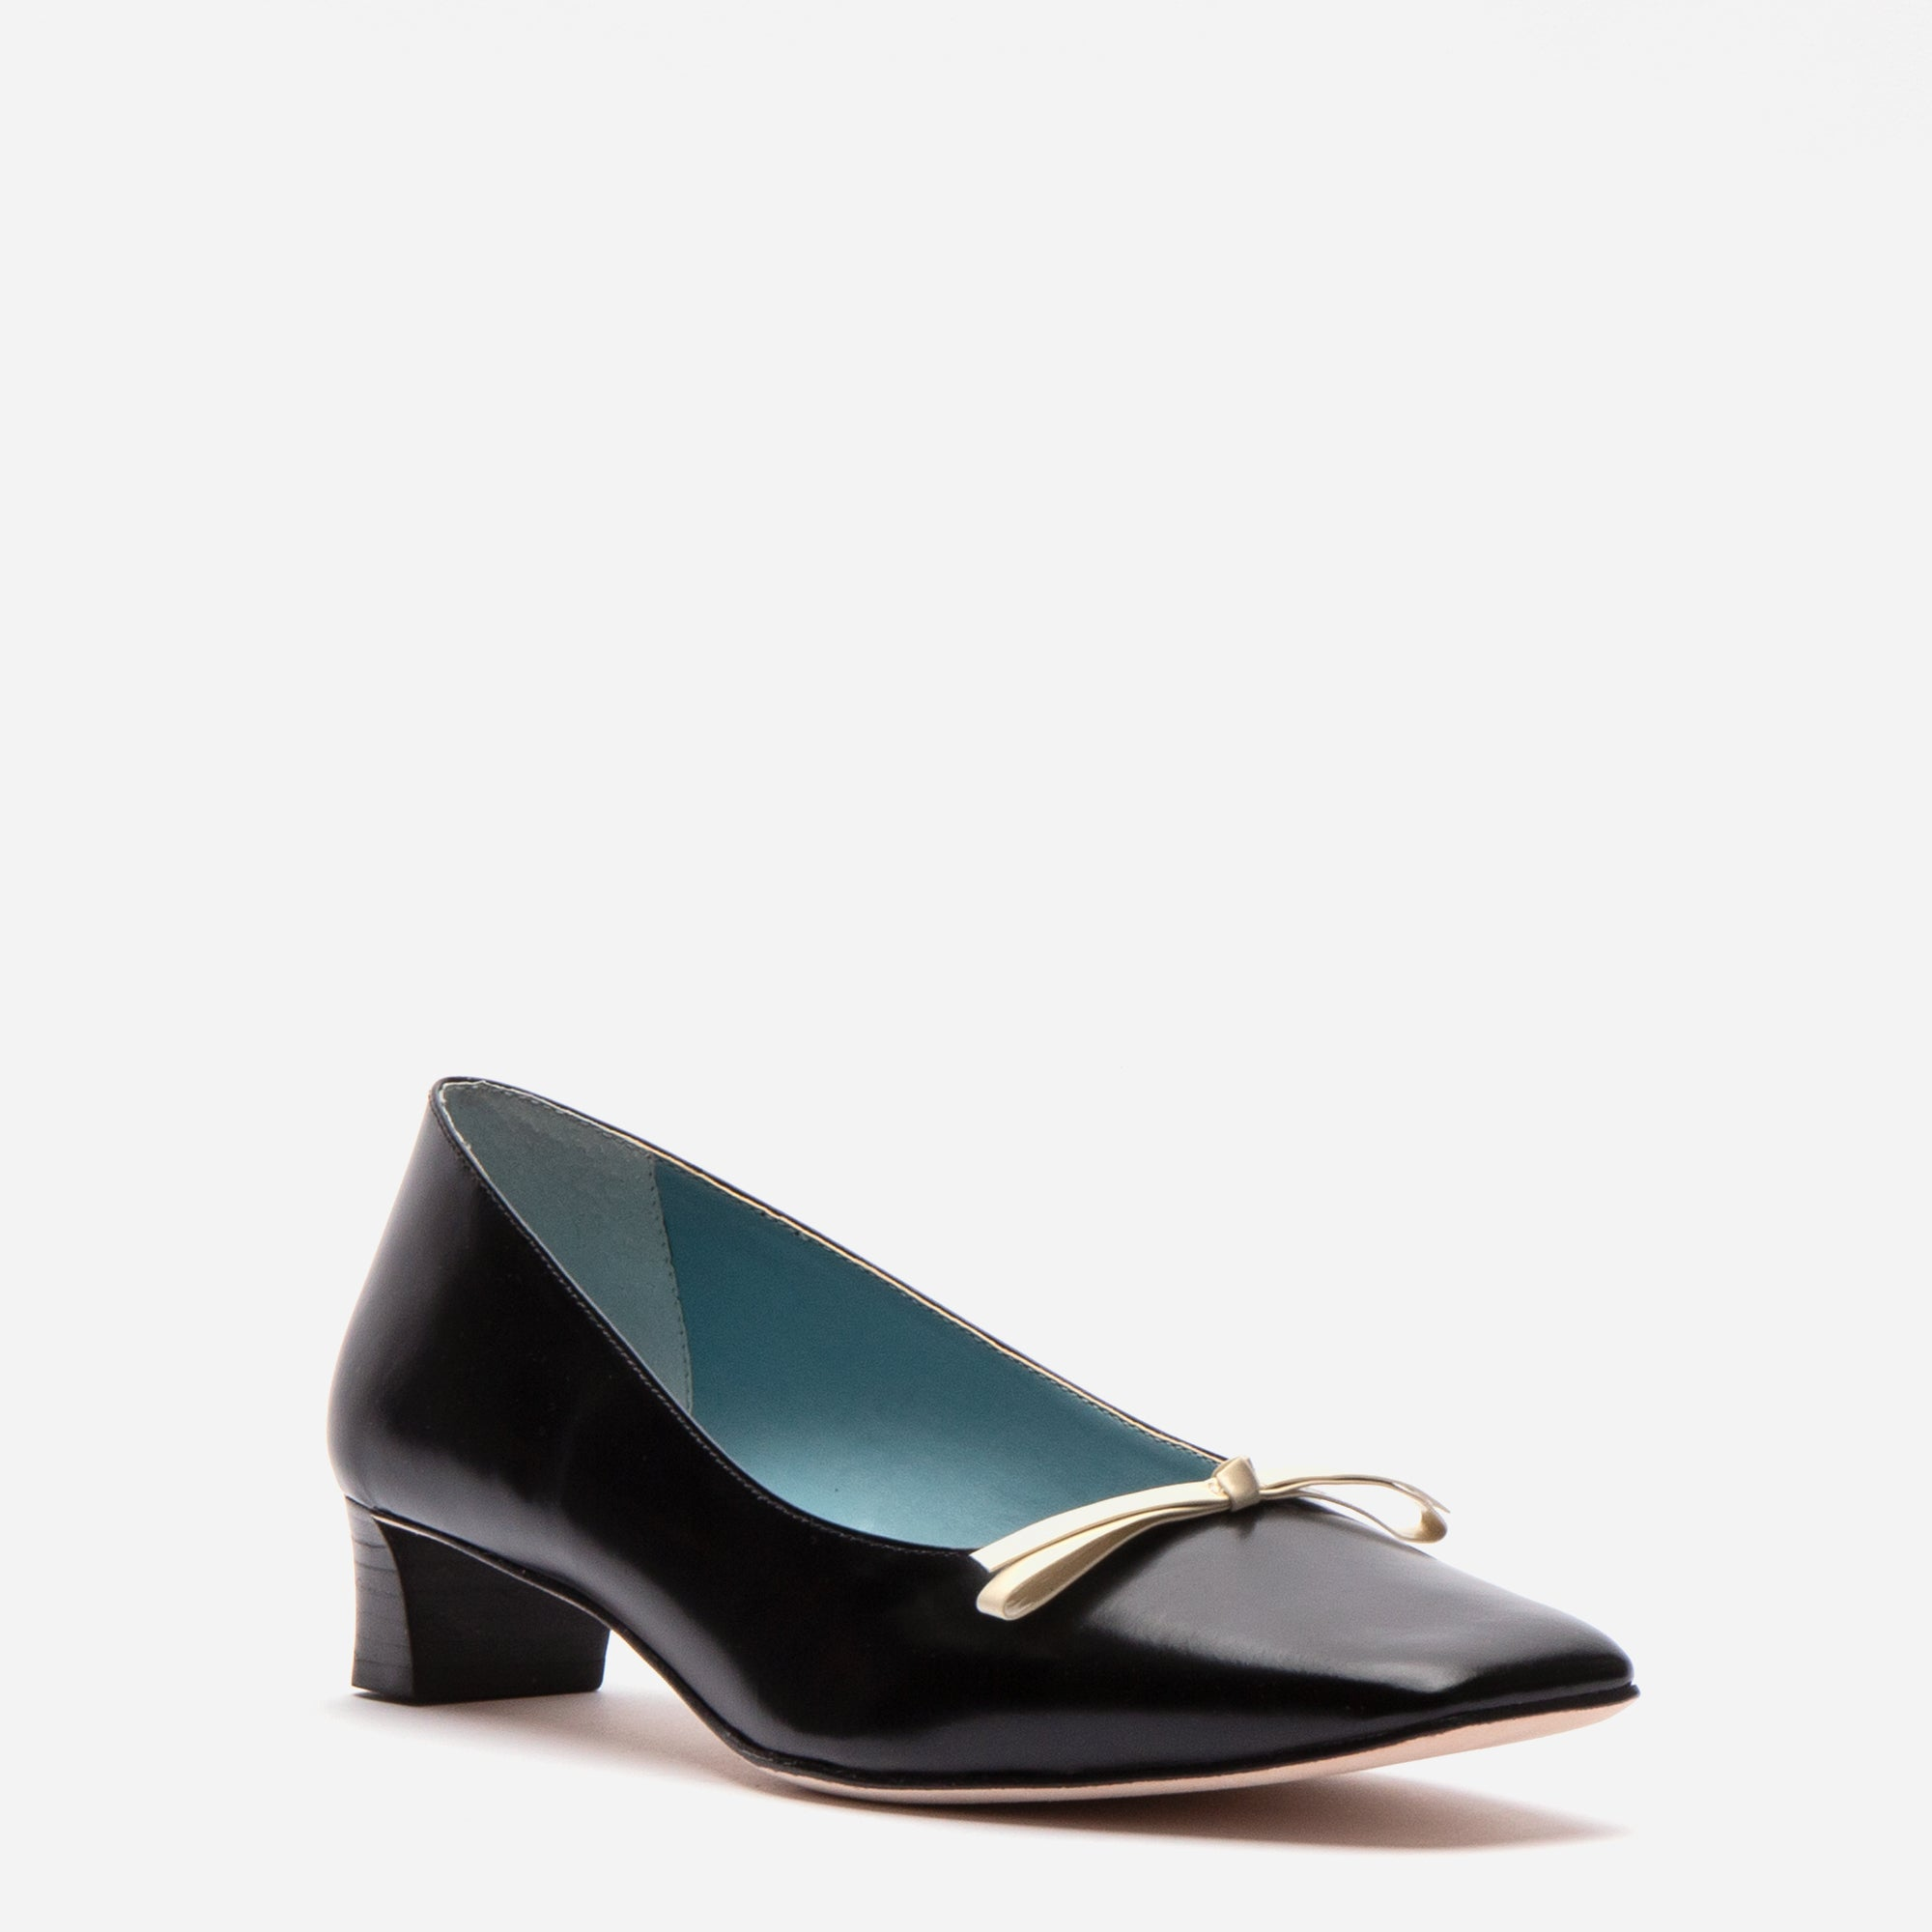 Mary Mini Block Heel Spazzalato Black Oyster